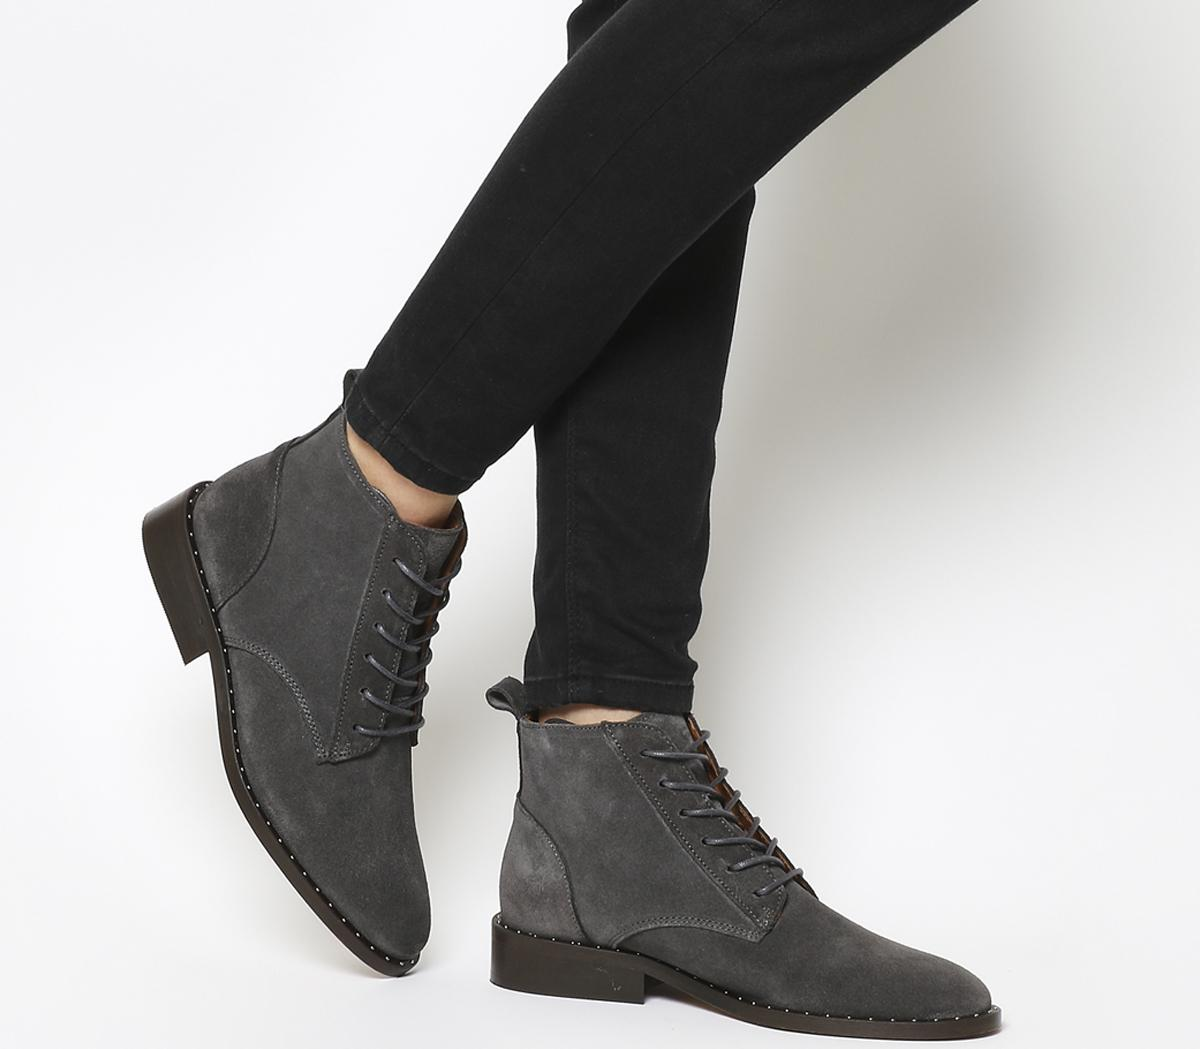 Artful Lace Up Boot With Studs